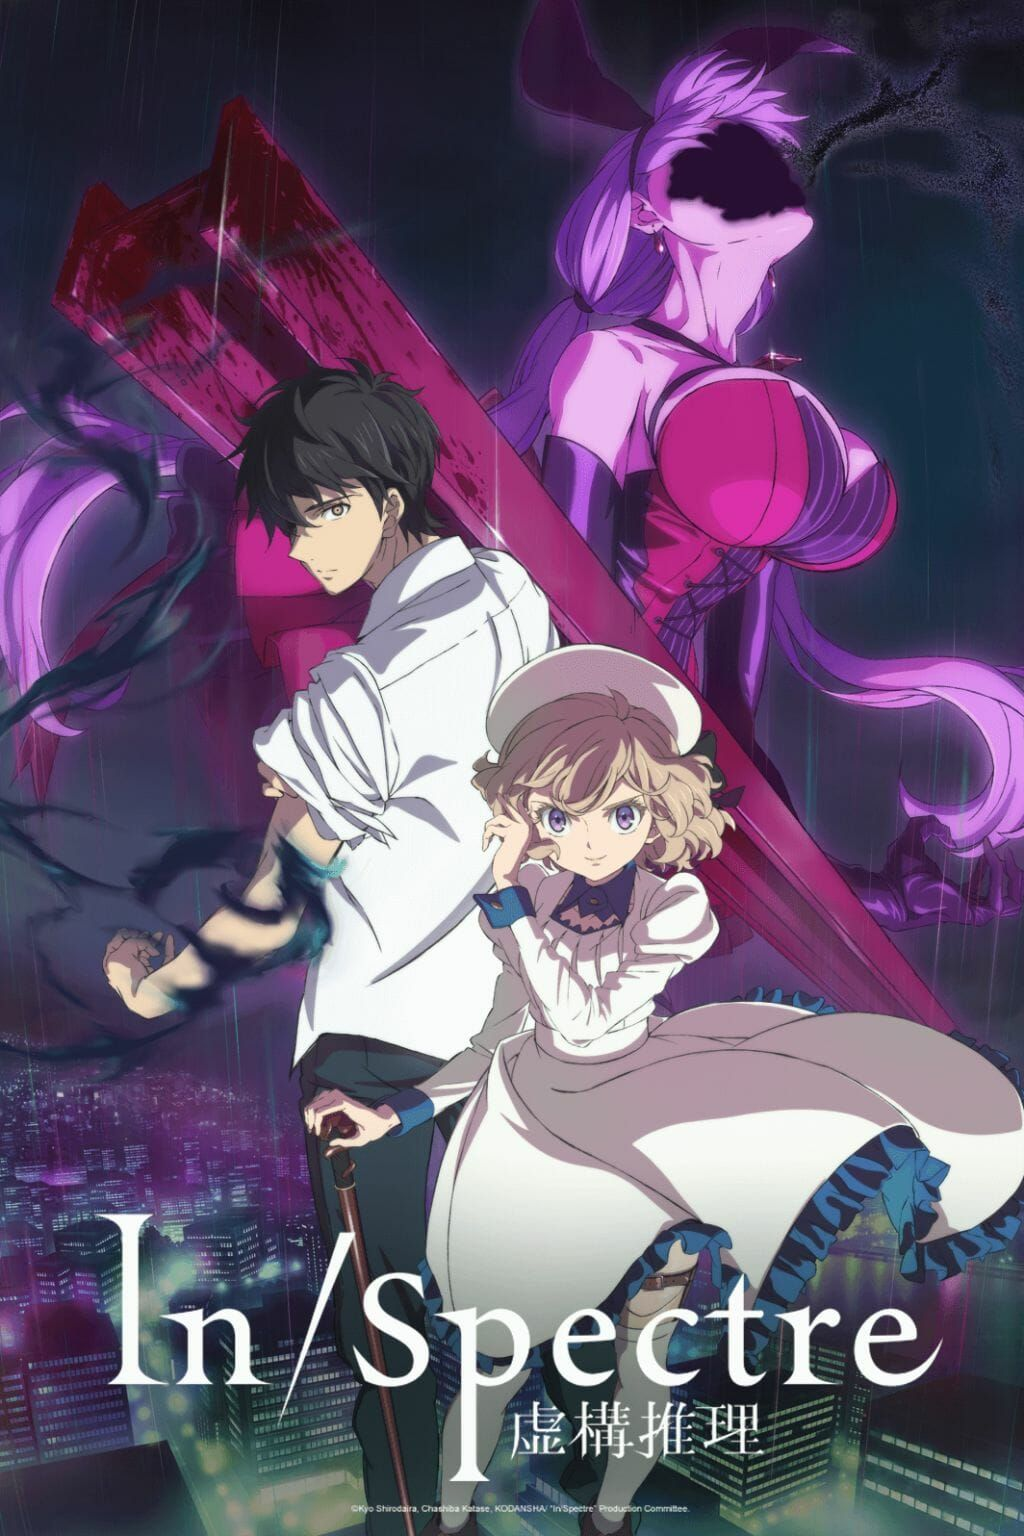 Crunchyroll To Host World Premiere For In/Spectre Anime At